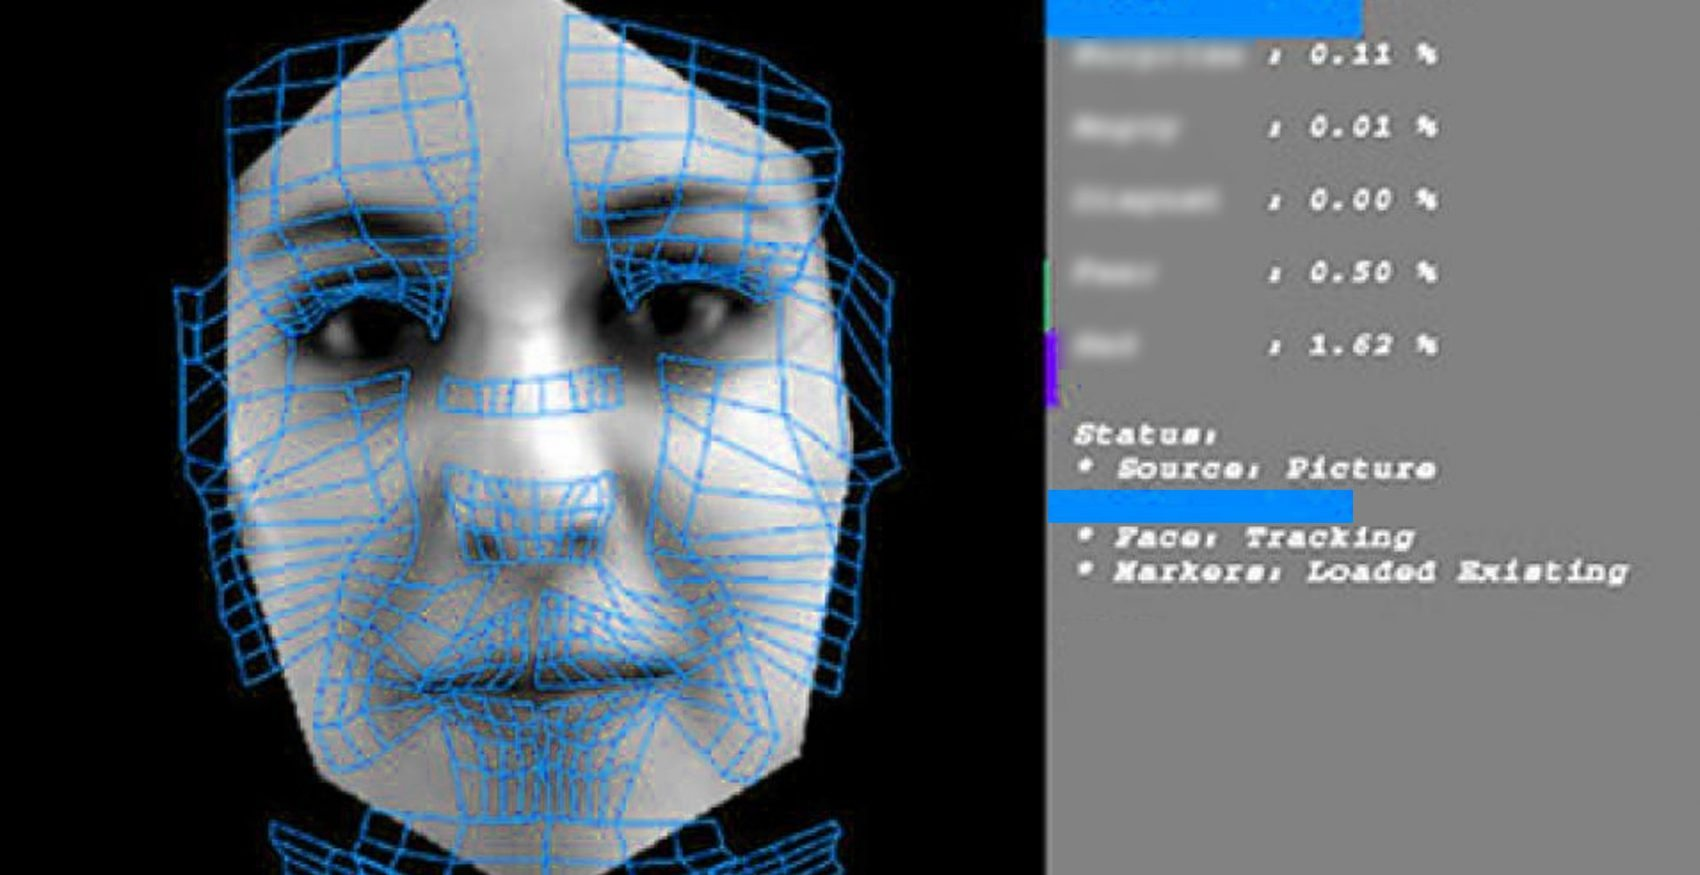 Facebook Joins Fight Against Sex Trafficking With Face Scanning Technology